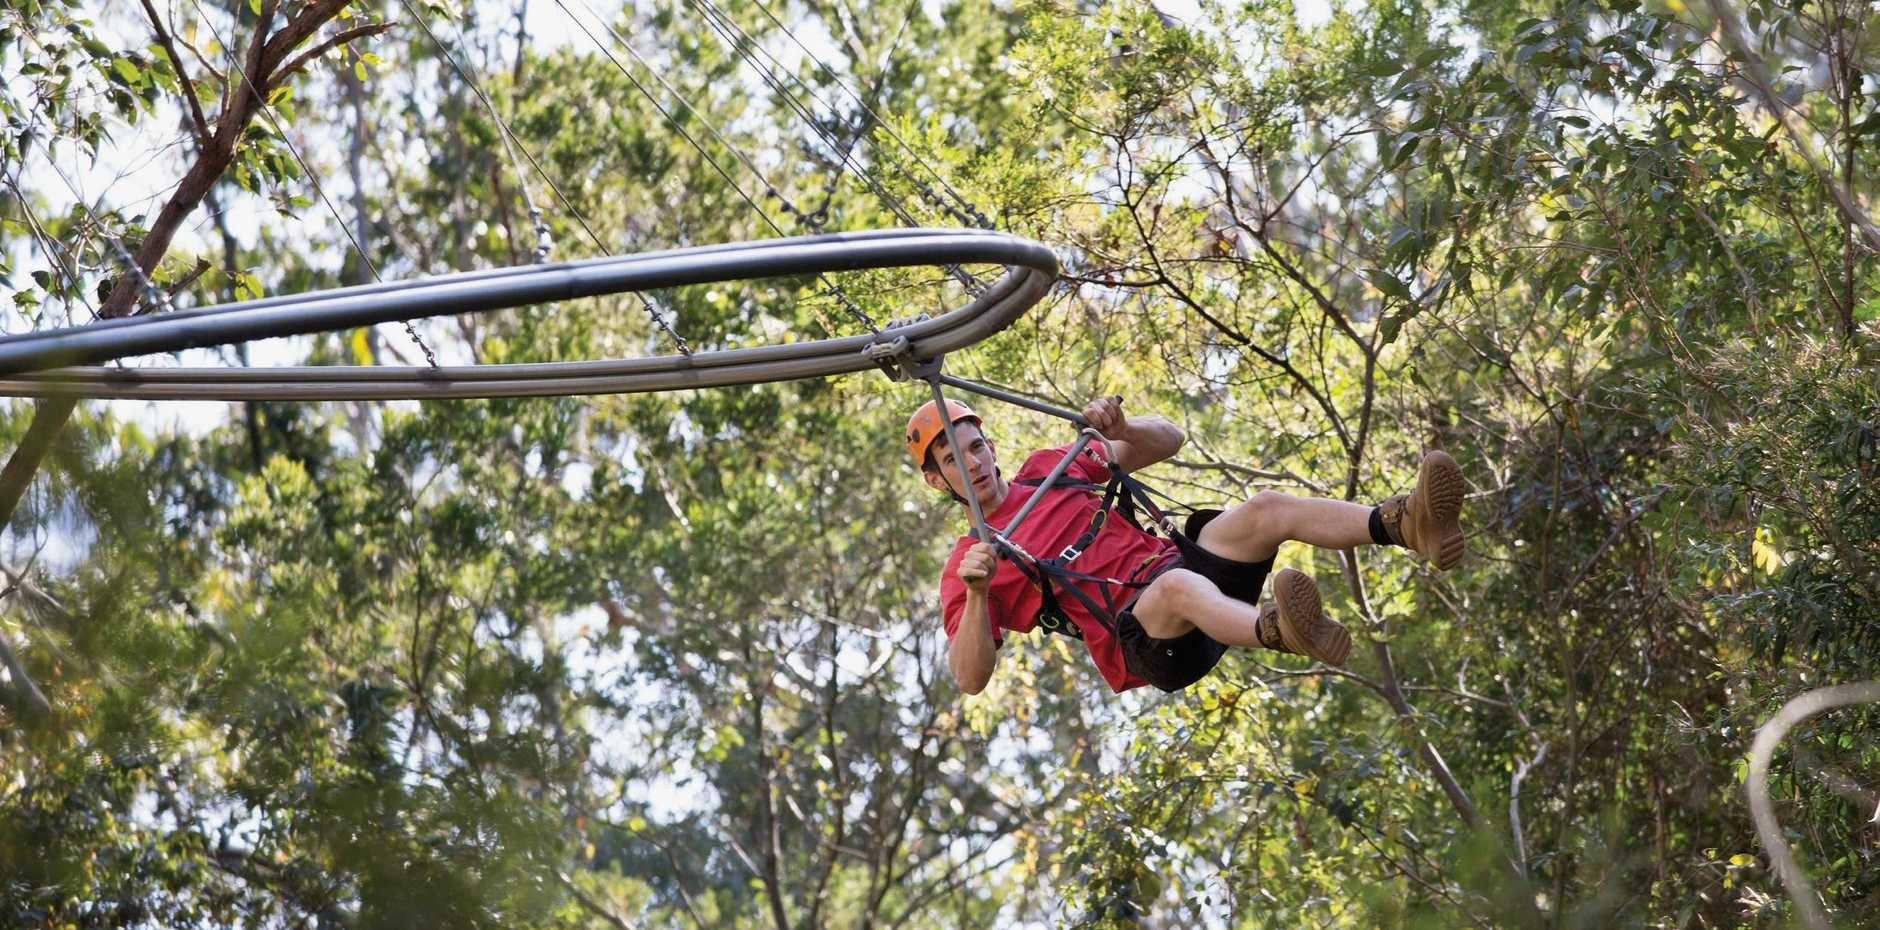 The type of zipline Rockhampton Regional Council have proposed for Mount Archer.  Photo Contributed